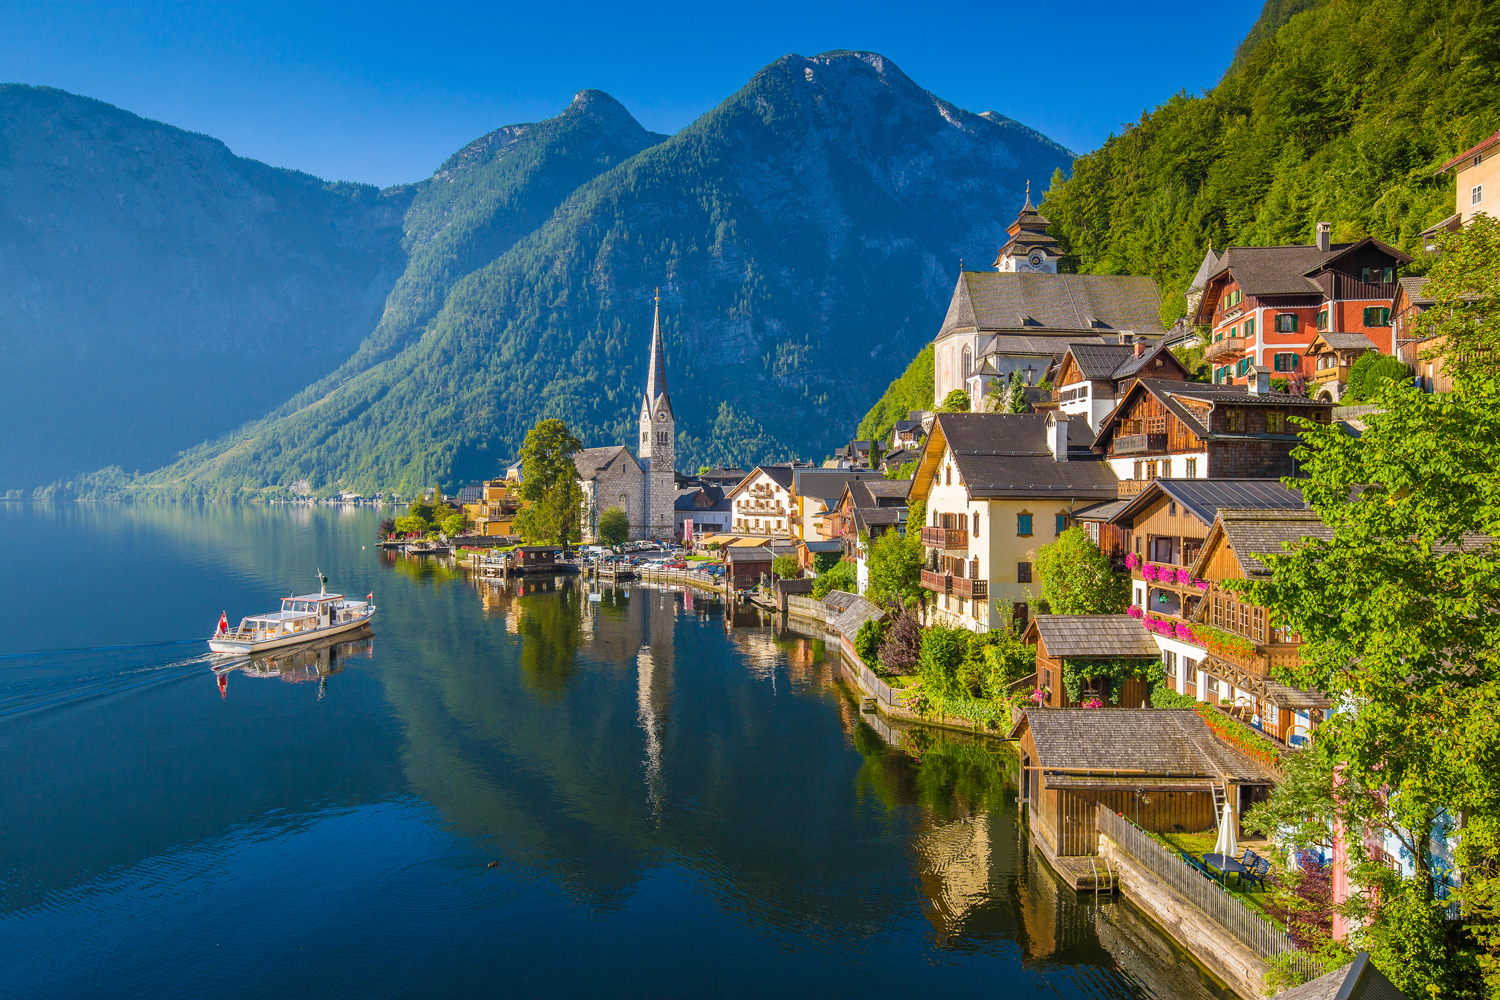 Scenic picture-postcard view of Hallstatt, a lakeside town in the Austrian Alps